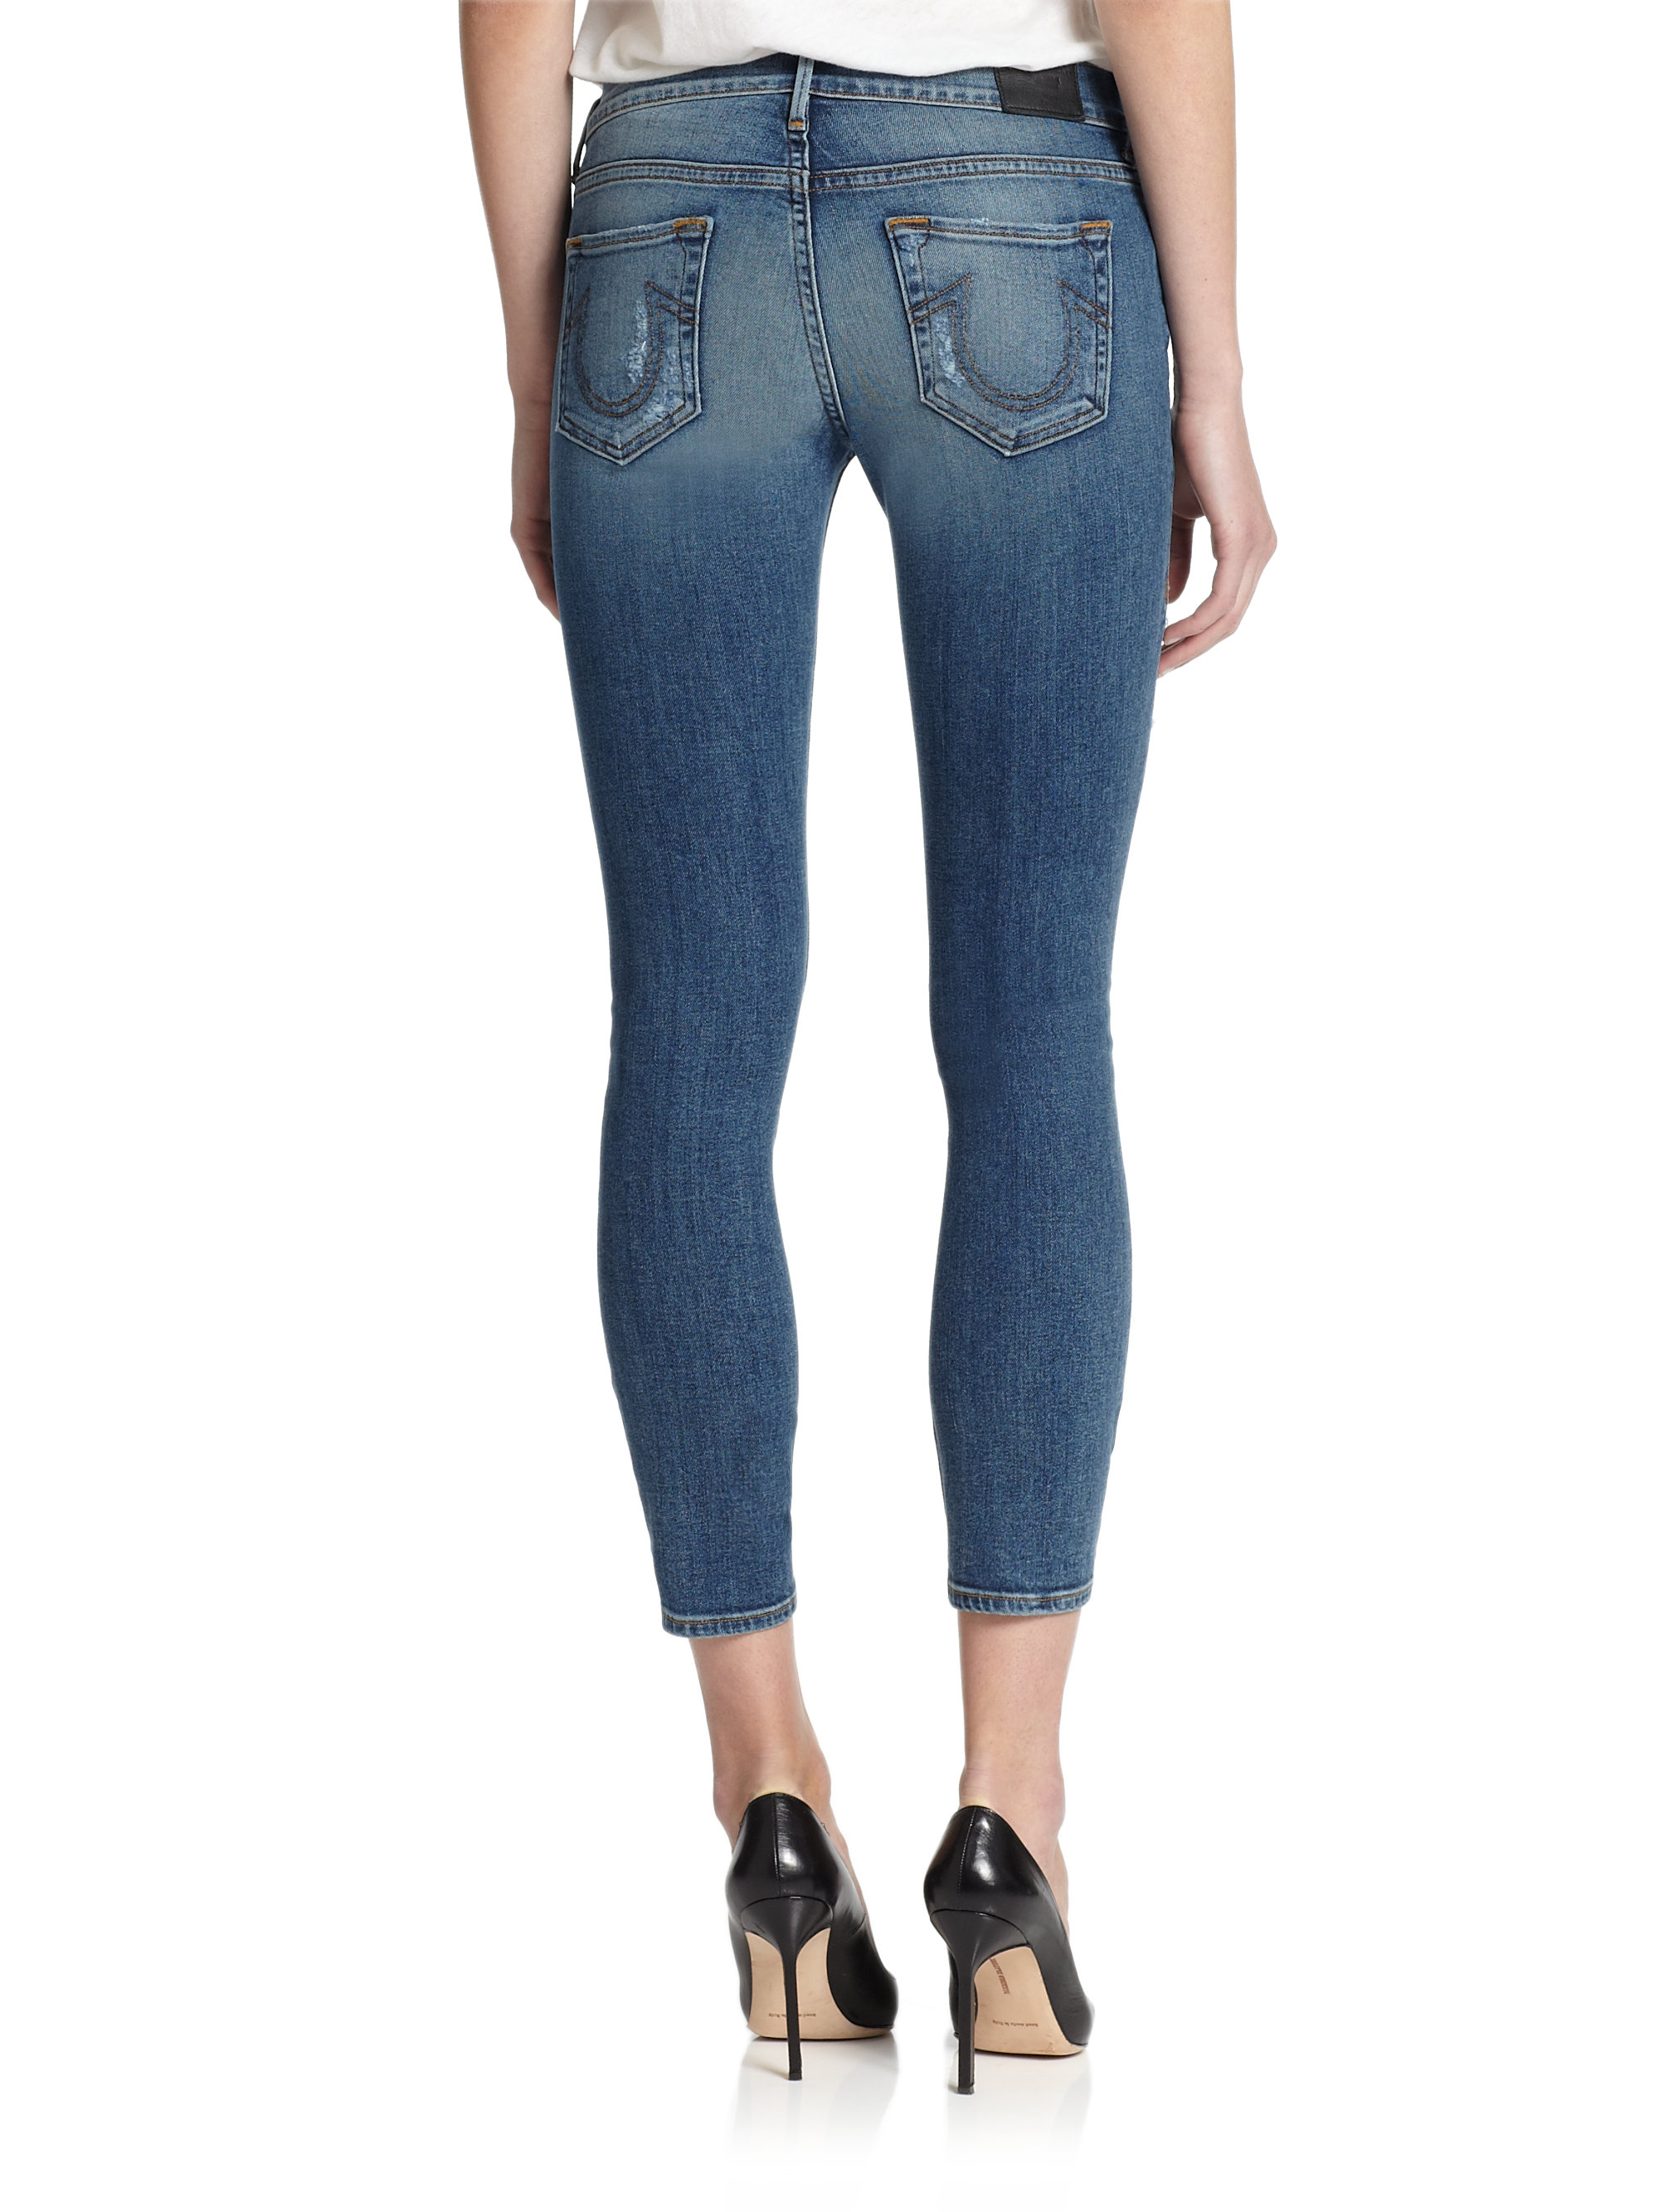 f4abe4e67 Lyst - True Religion Cora Destroyed Cropped Skinny Jeans in Blue